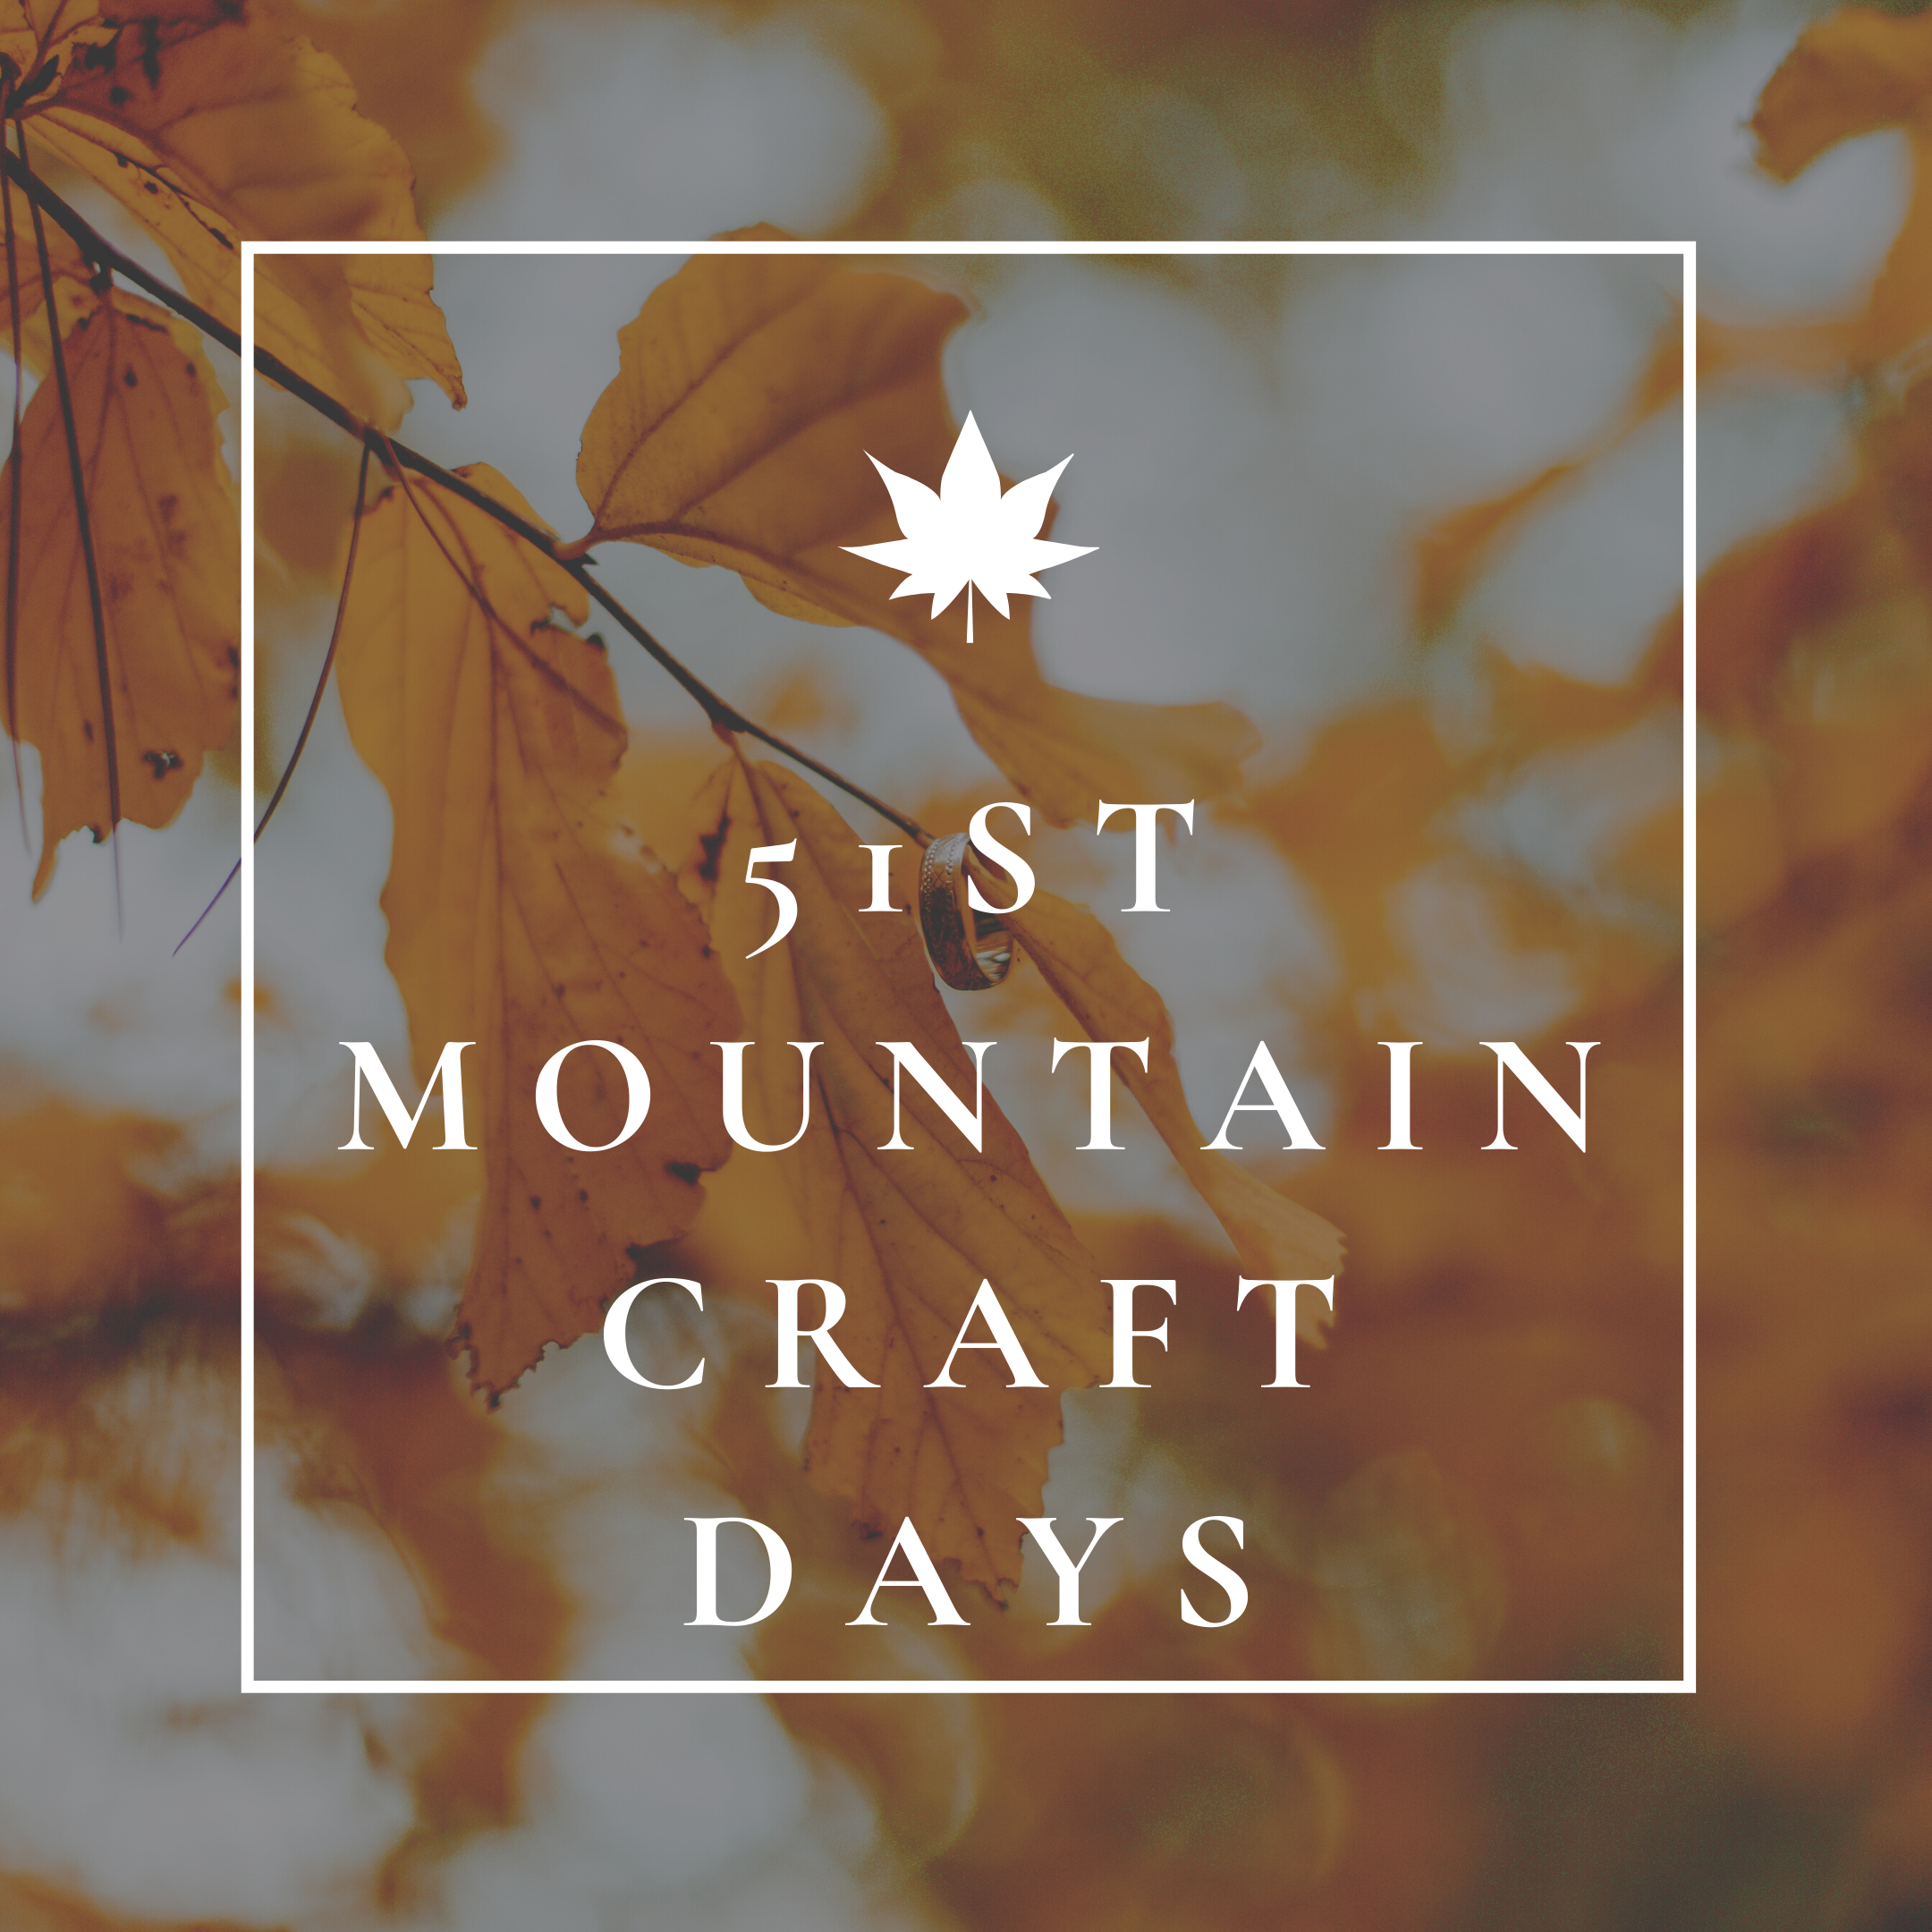 Lettering for Mountain Craft Days in front of a background of colorful fall leaves.